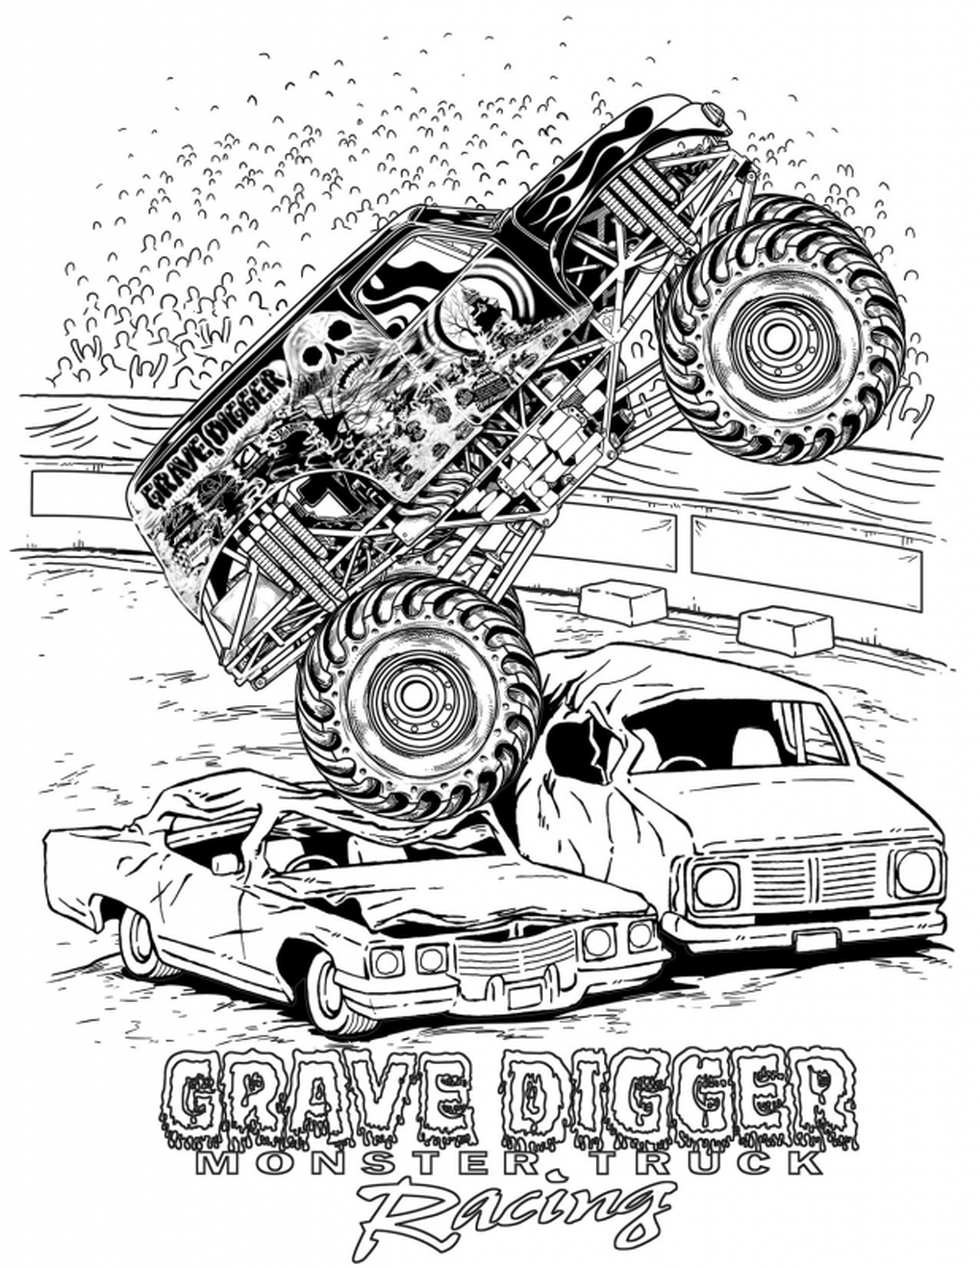 grave digger monster truck coloring pages get this grave digger monster truck coloring pages